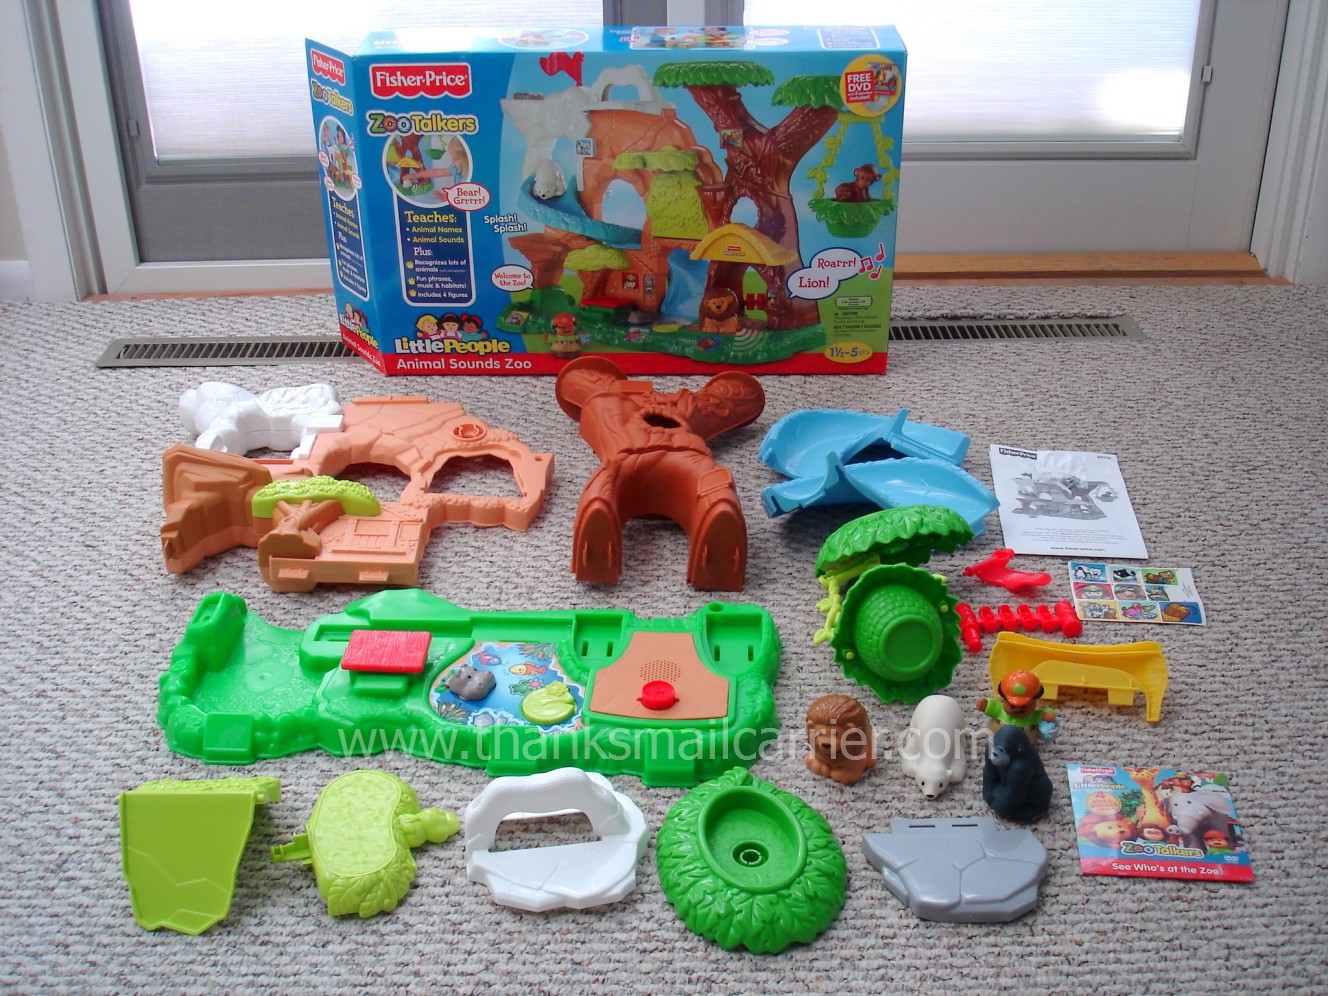 Thanks Mail Carrier Fisher Price Little People Zoo Talkers Animal Sounds Zoo Review